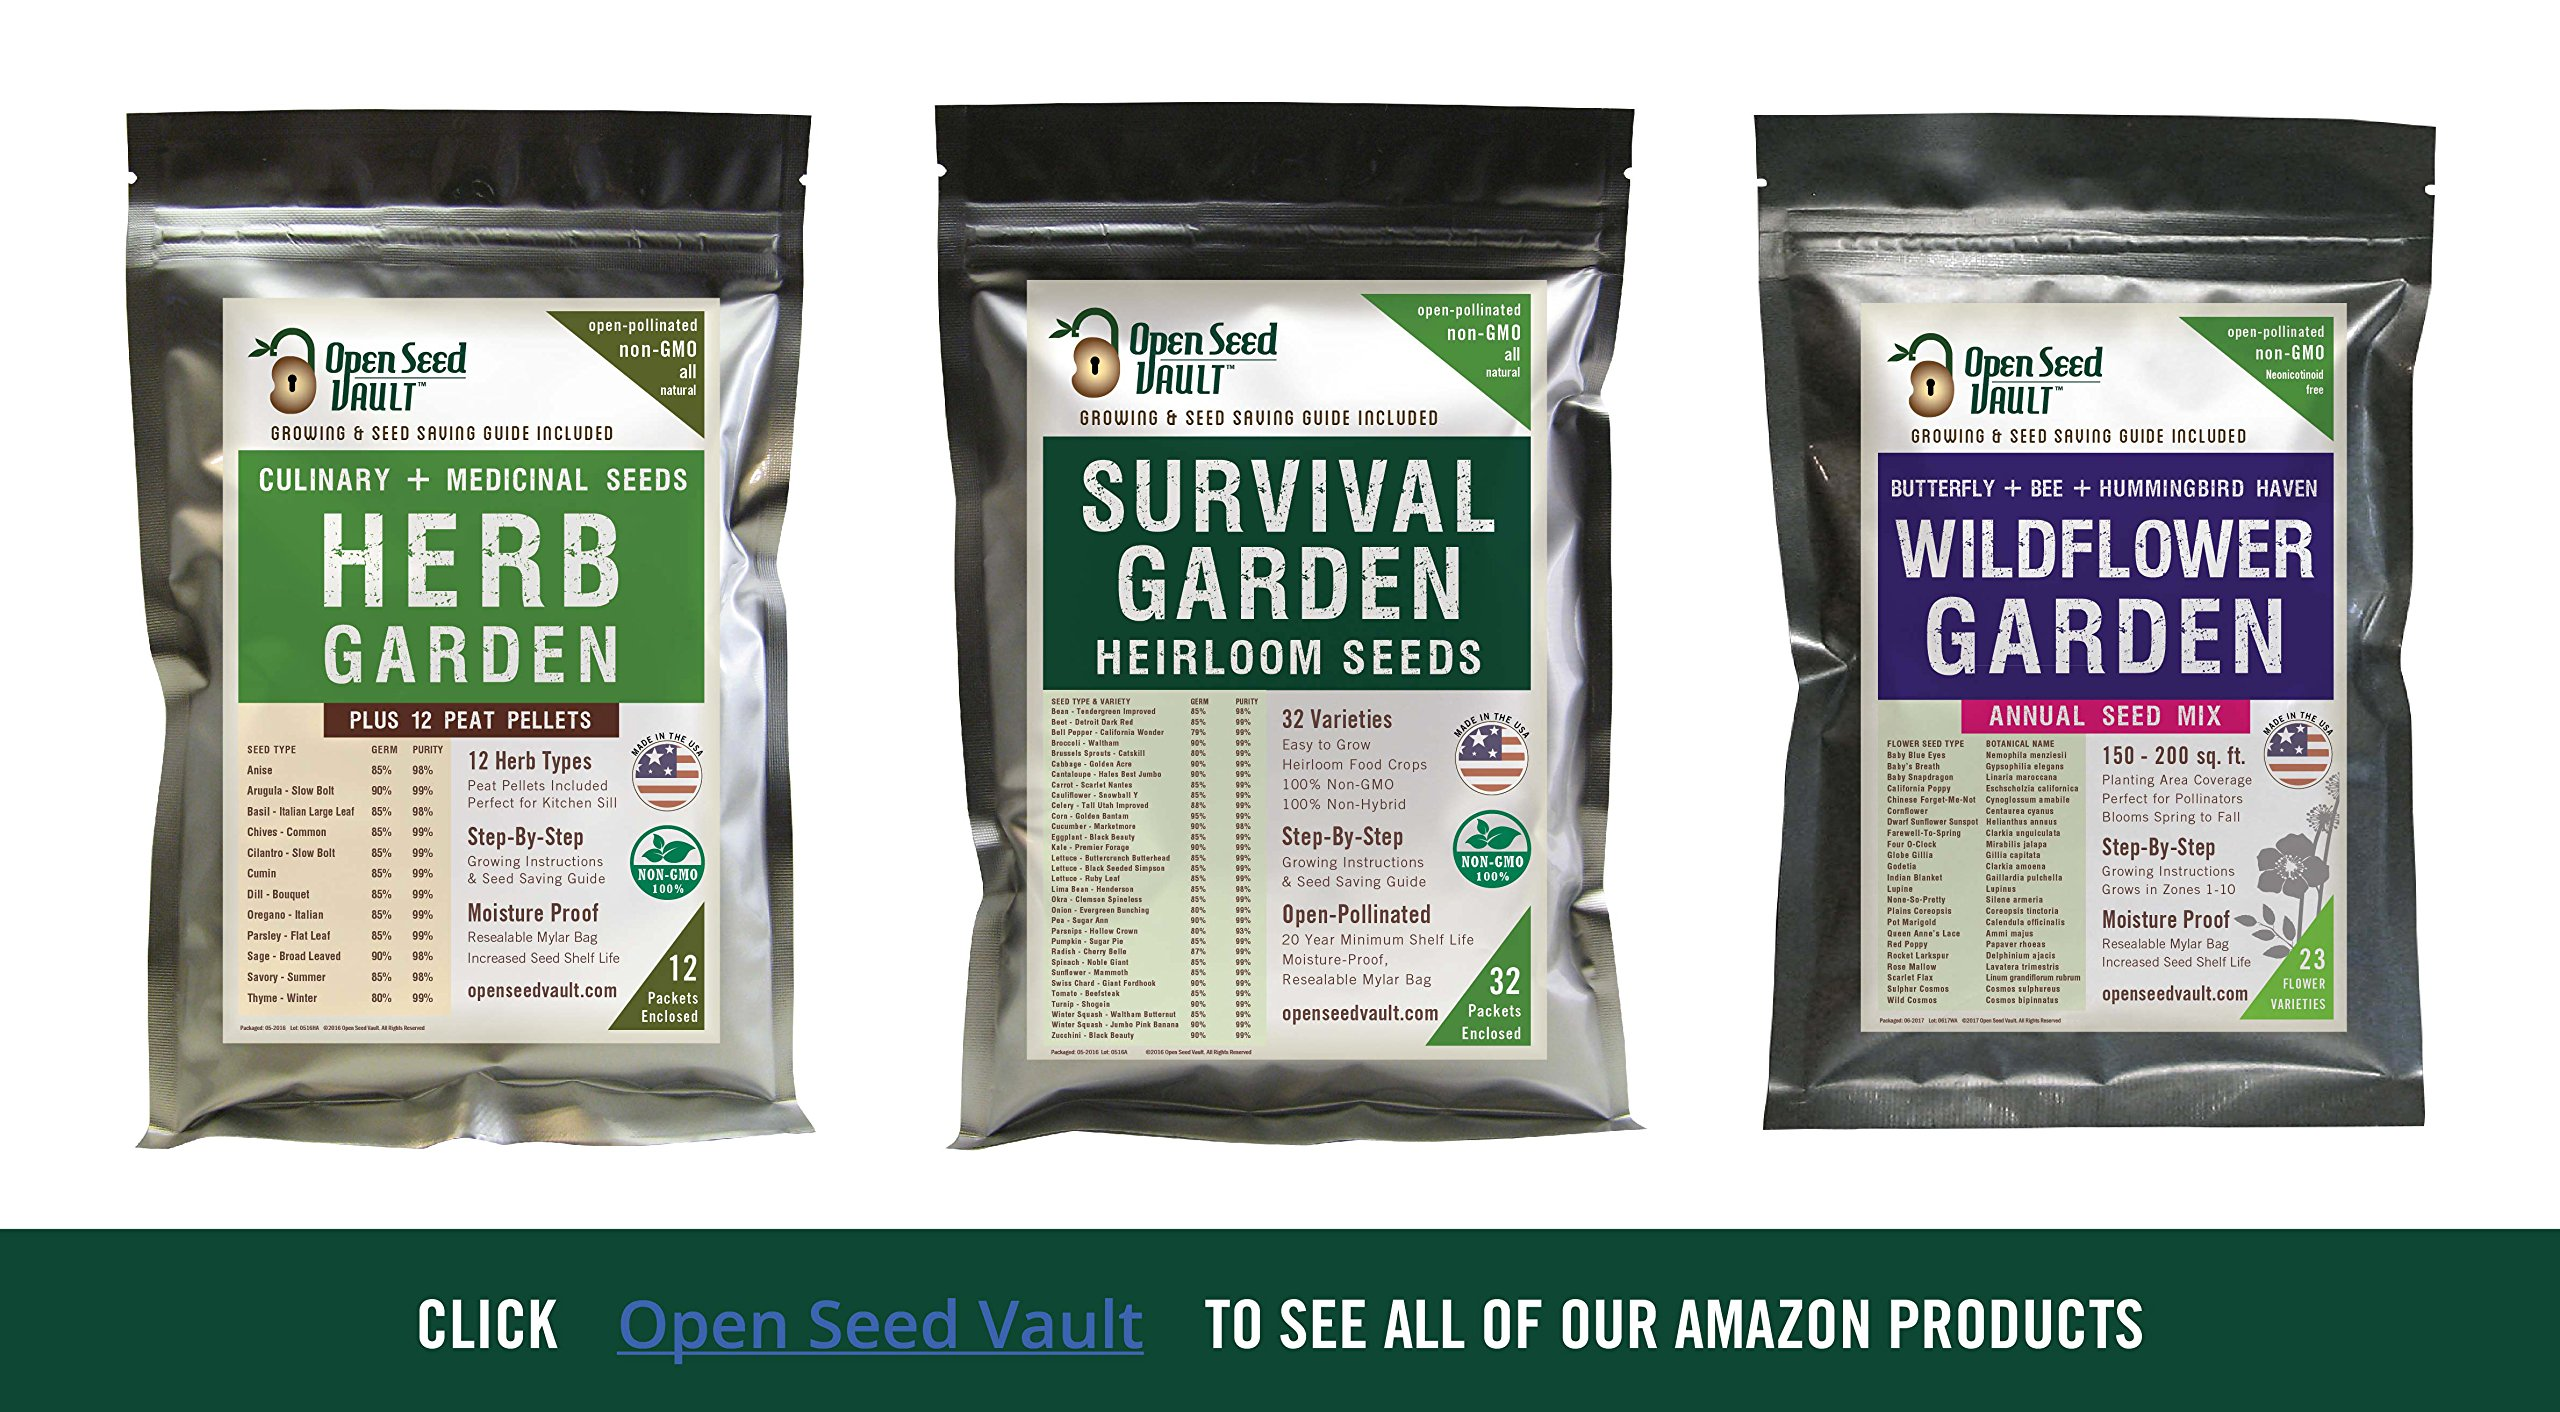 Survival Garden 15,000 Non GMO Heirloom Vegetable Seeds Survival Garden 32 Variety Pack by Open Seed Vault 5 32 Varieties of All Natural Vegetable Seeds: Non hybrid, Non gmo, Heirloom 100% Naturally Grown and Open Pollinated seeds with high Germination Rate Vegetable Growing and Seed Harvesting Guide Included with Seeds Tested for Maximum Germination and Yield.